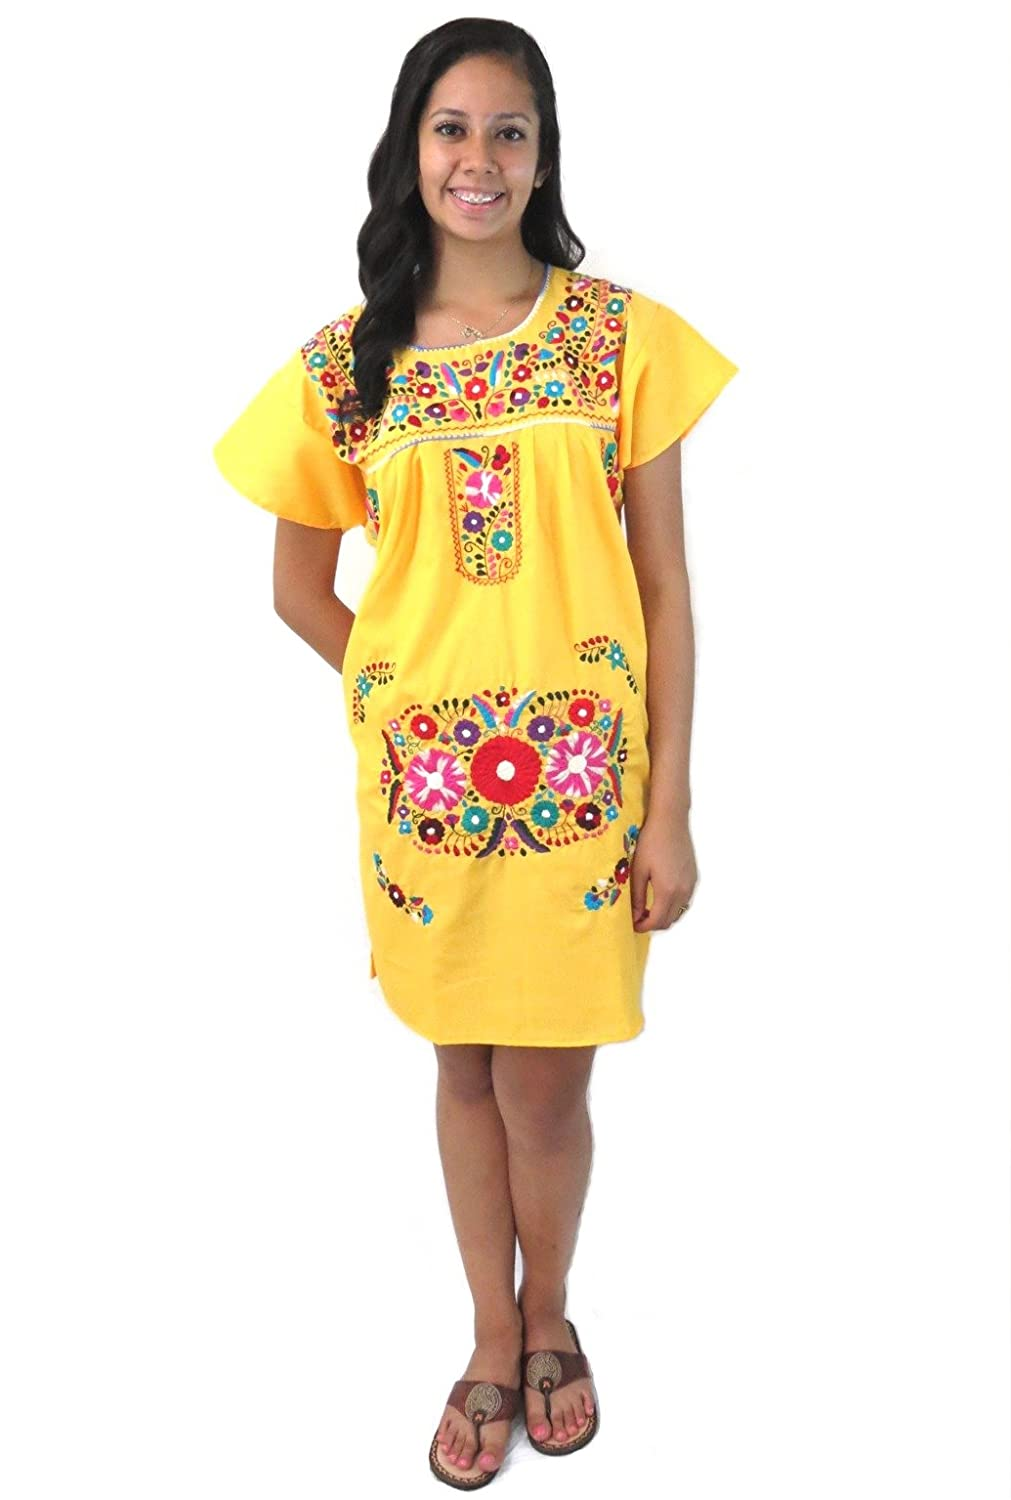 4dcf7040698 ... Embroidered Canary Yellow Mexican Puebla Tunic Dress -  DeluxeAdultCostumes.com